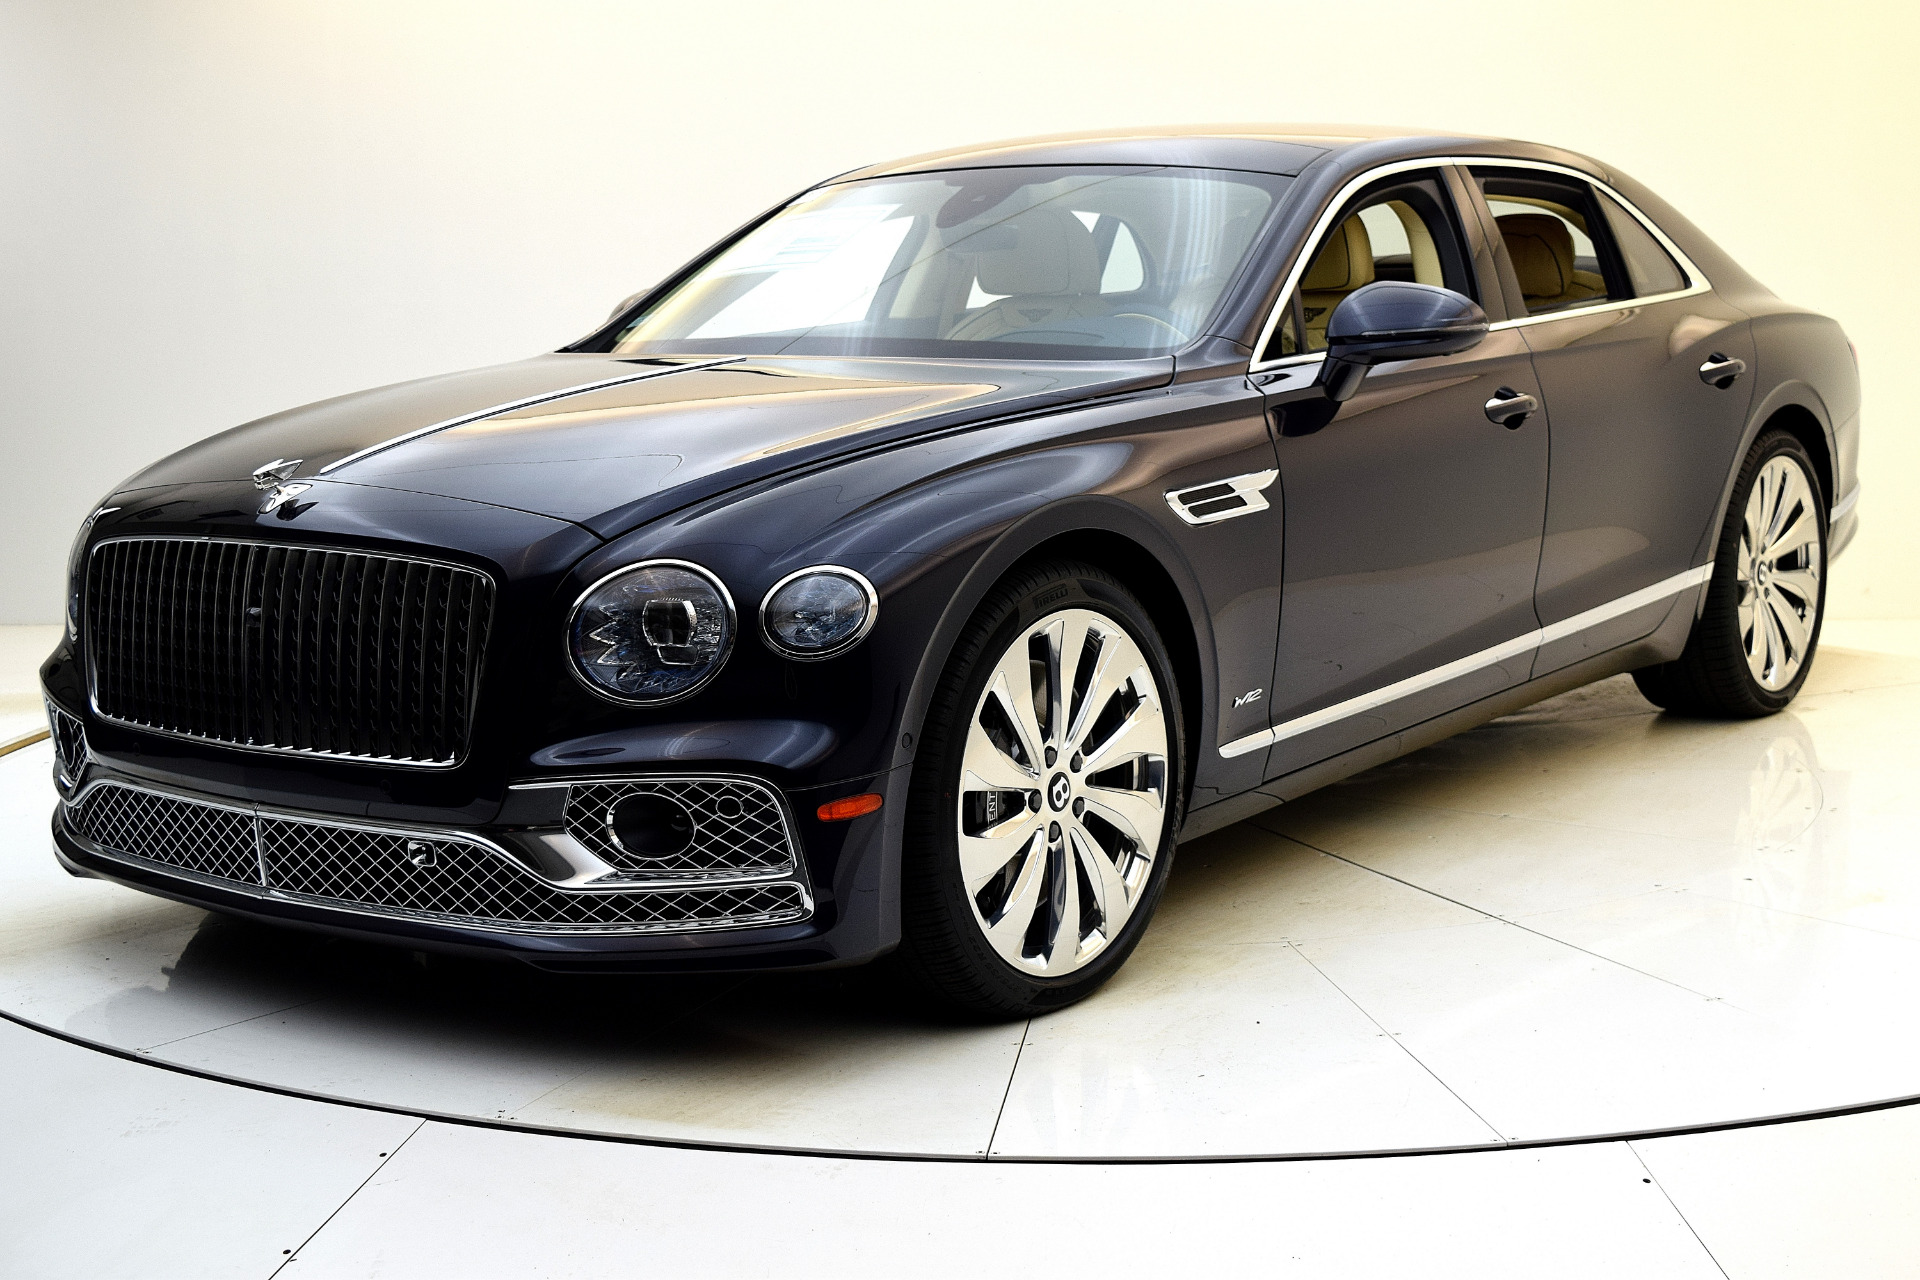 Used 2021 Bentley Flying Spur W12 for sale $269,880 at F.C. Kerbeck Aston Martin in Palmyra NJ 08065 2